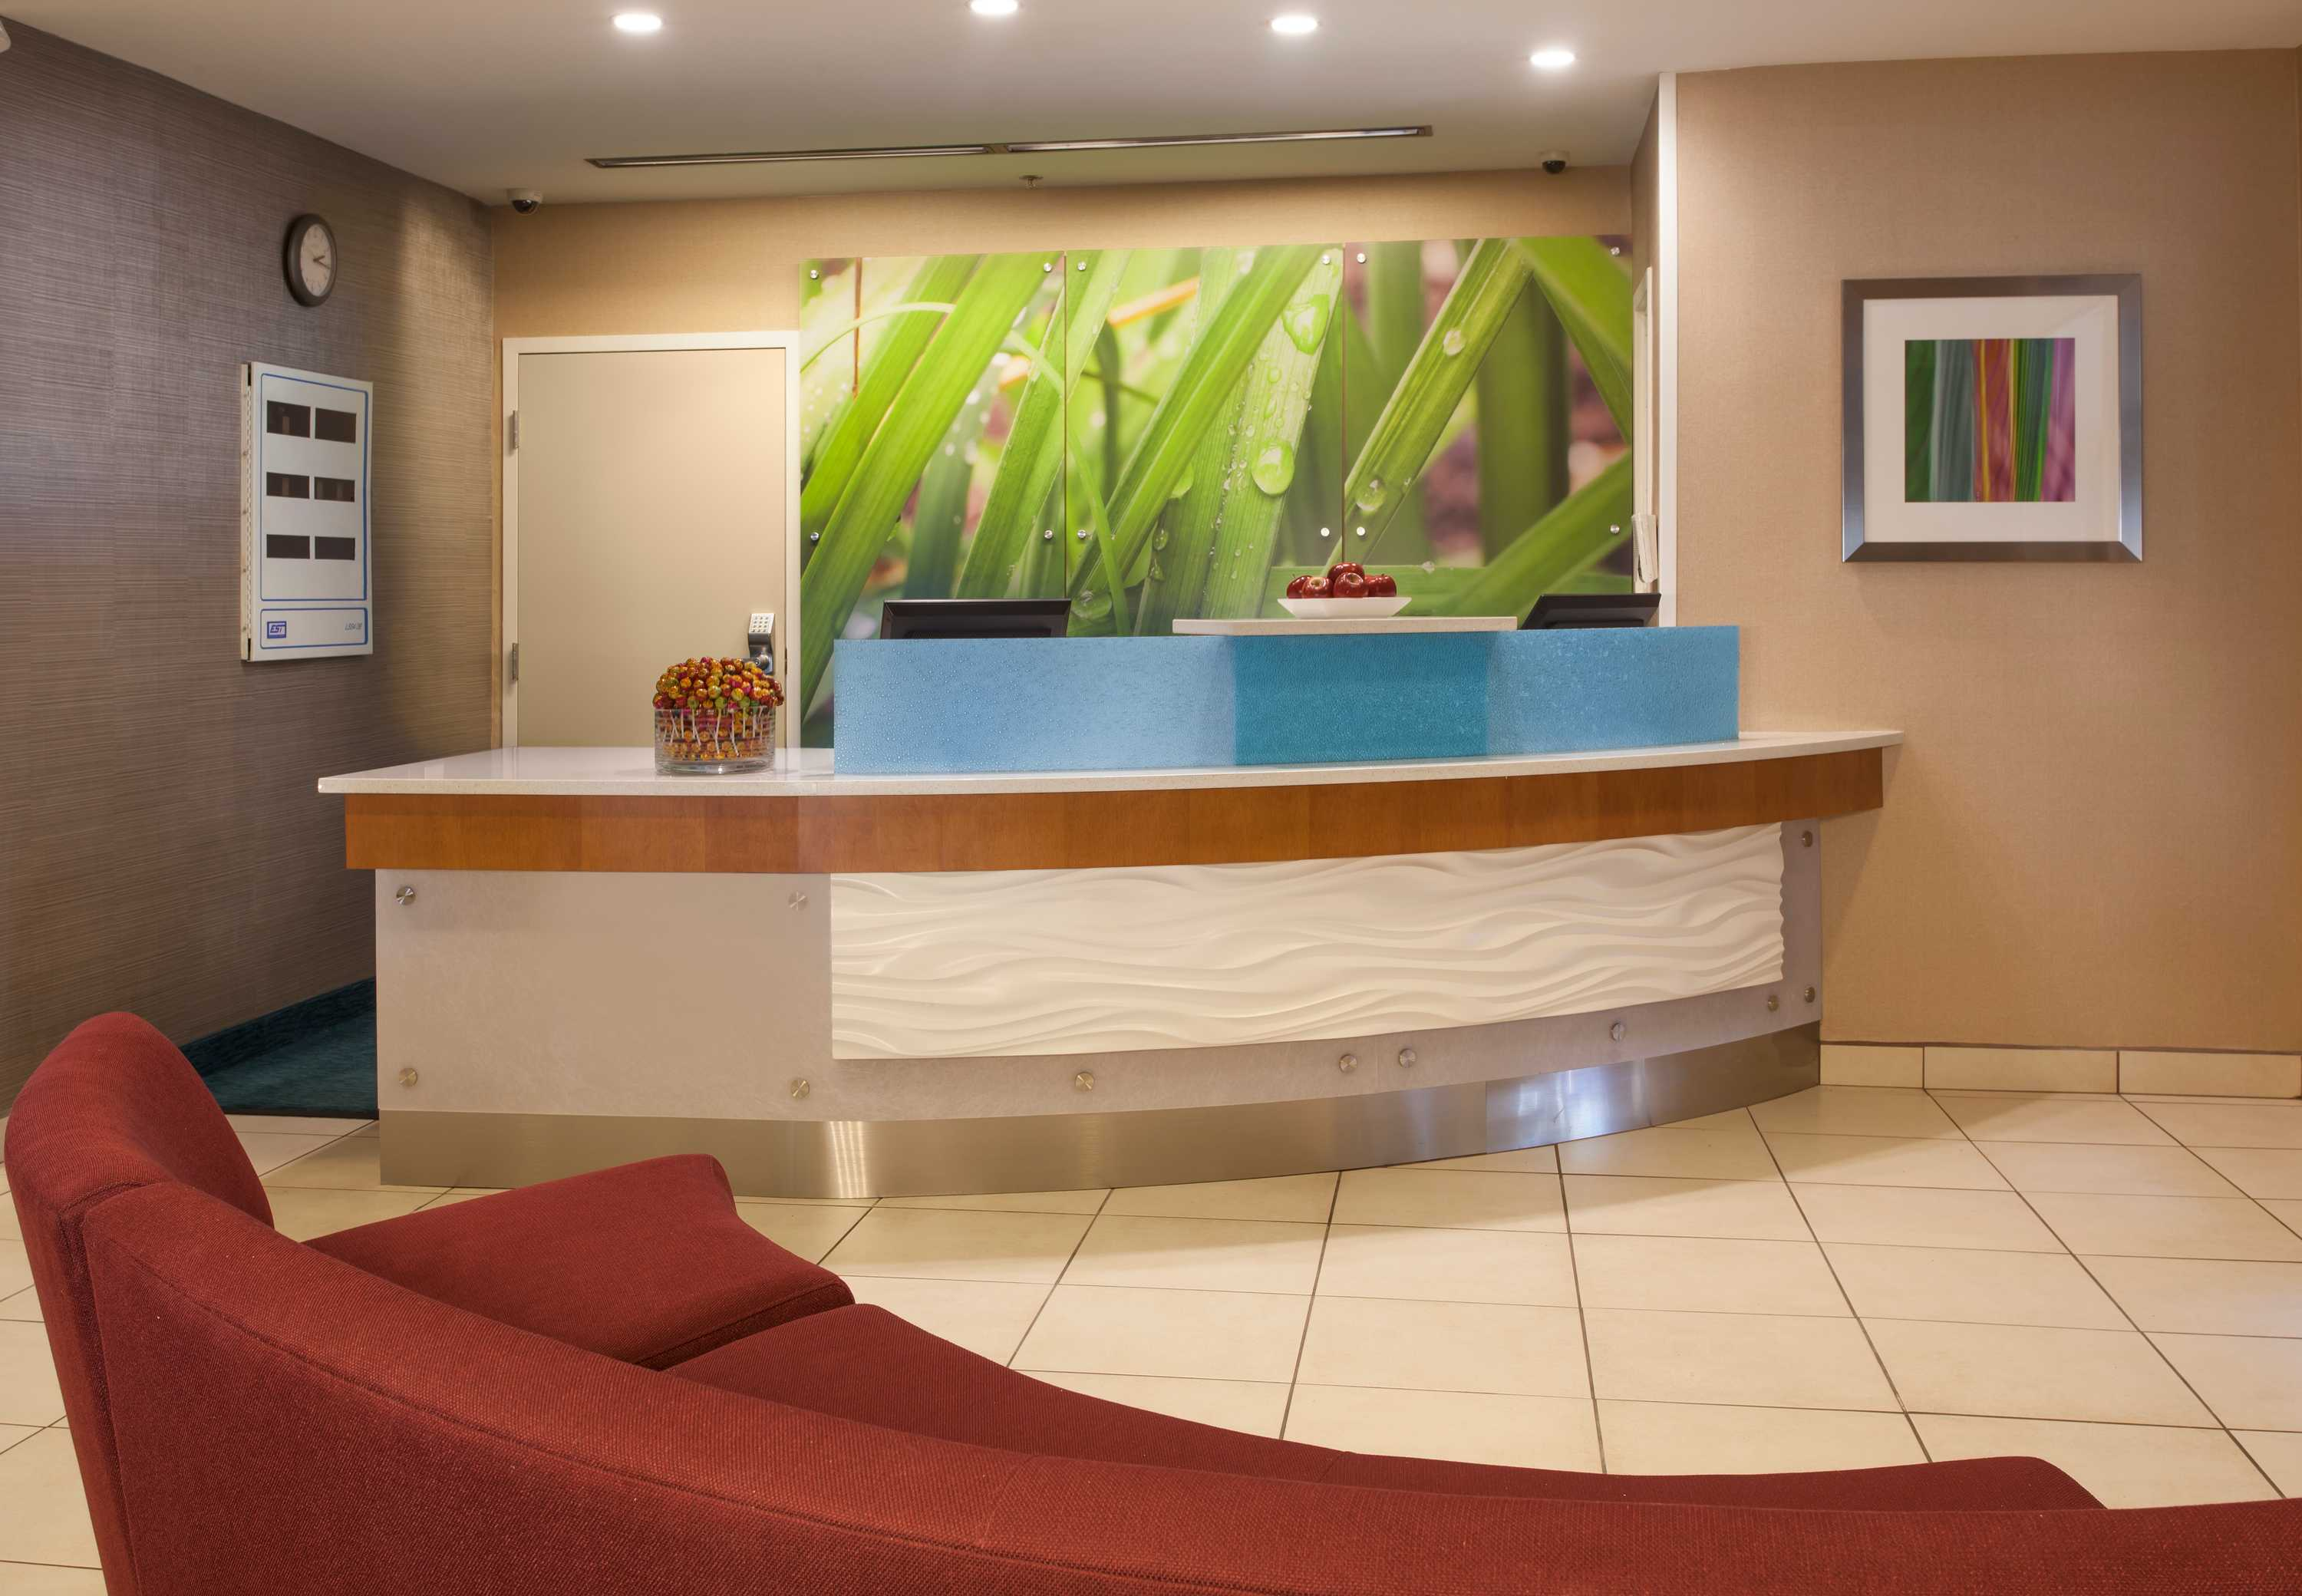 SpringHill Suites by Marriott Phoenix Glendale/Peoria image 10